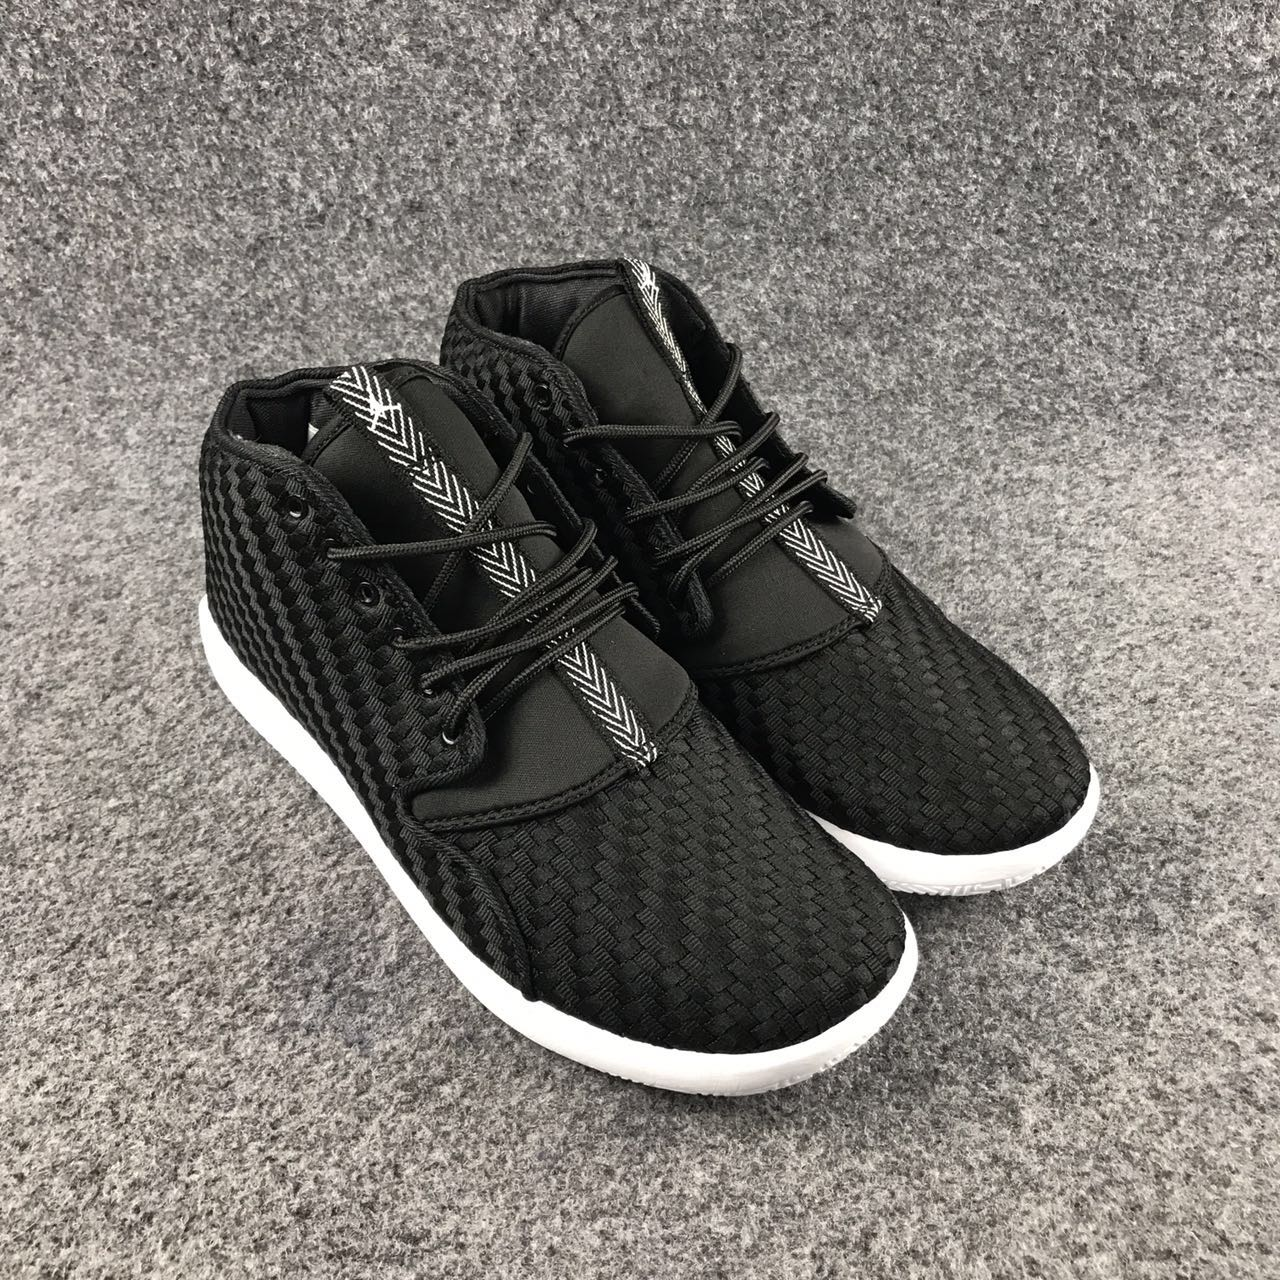 Original Air Jordan Eclipse Black Shoes